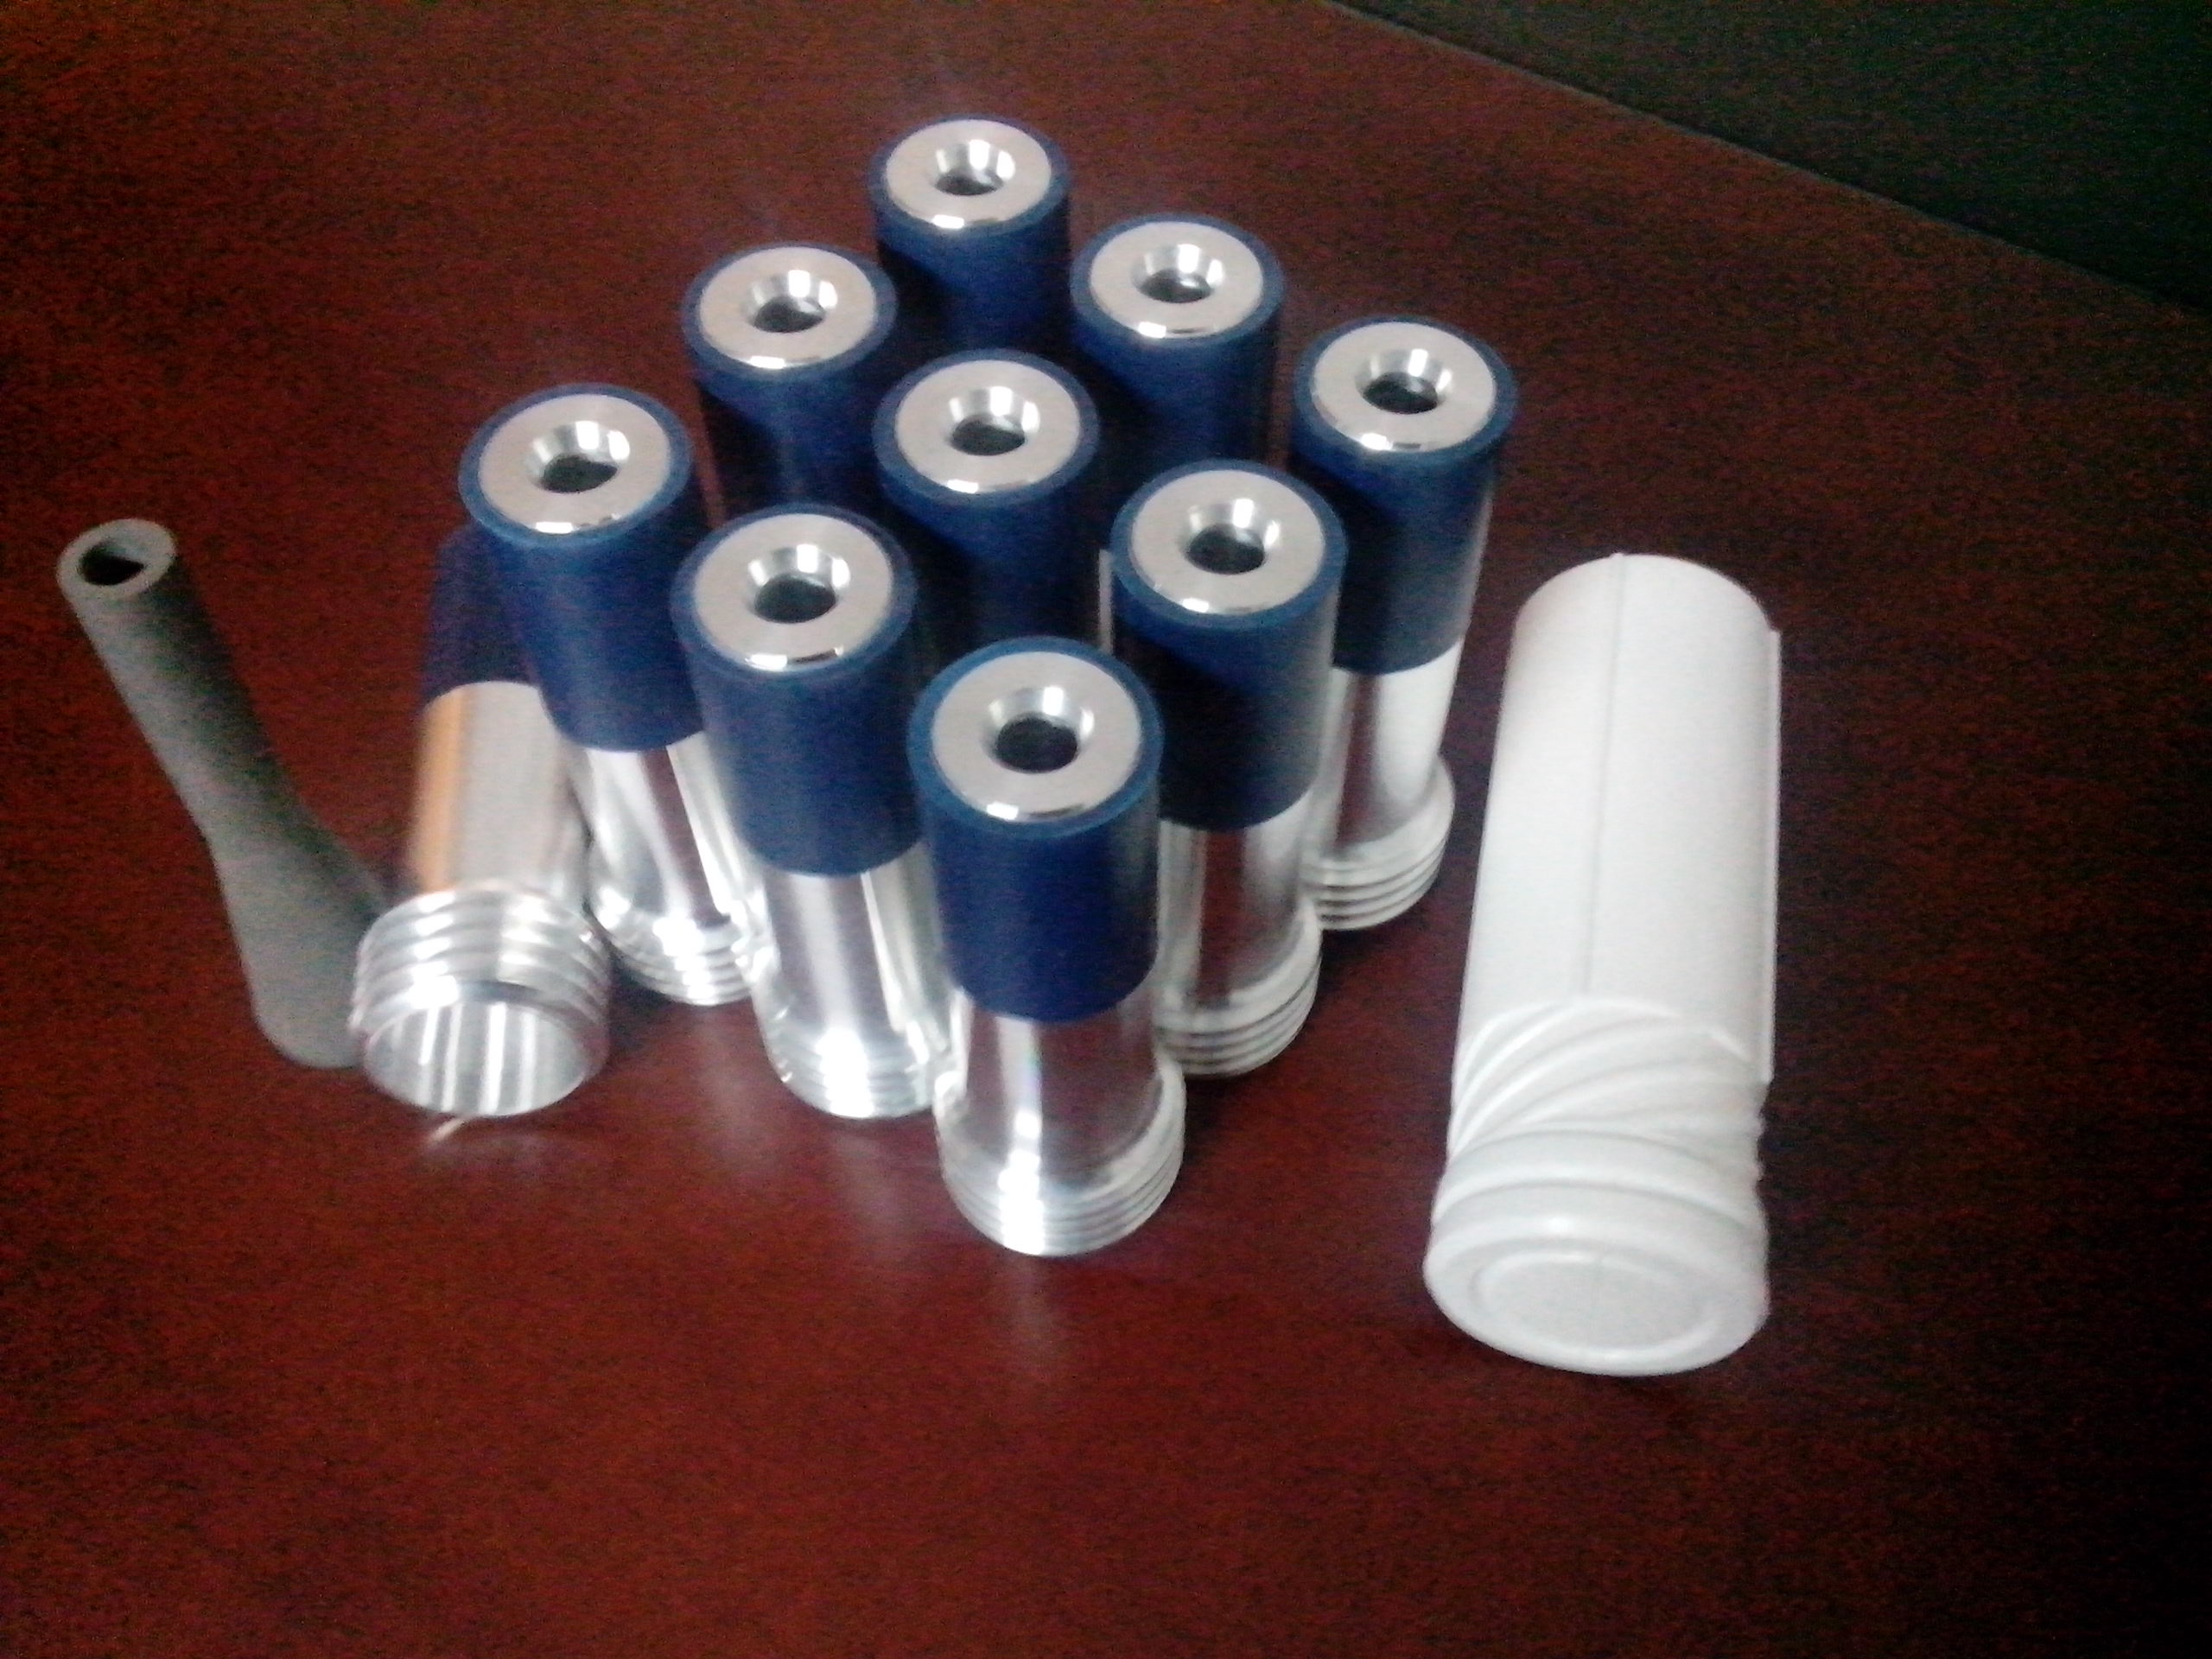 Boron carbide nozzle with plastic jacket